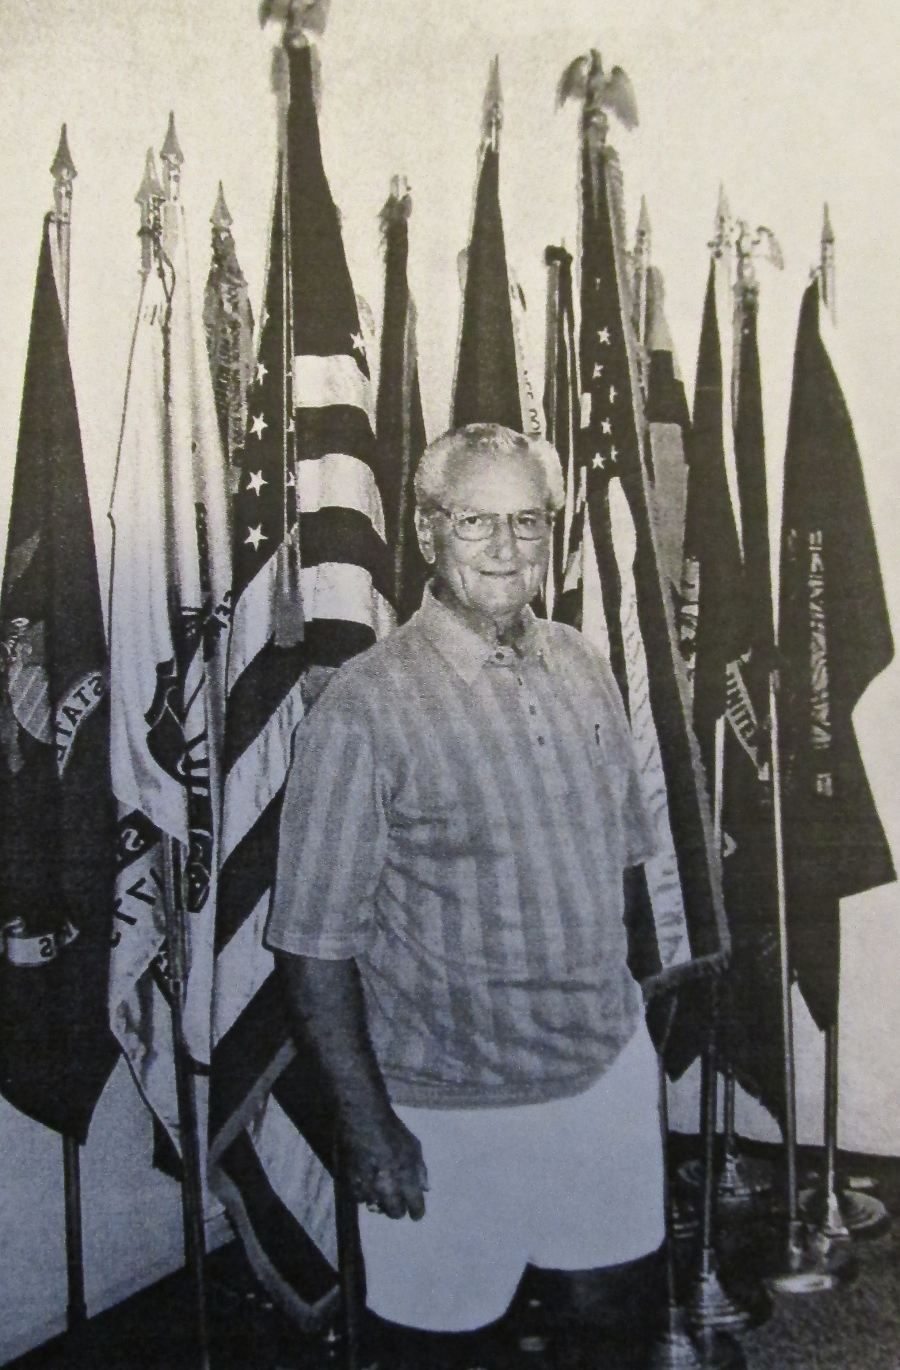 Jerry Meadows of Port Charlotte was a staff sergeant in the 106th Infantry Division. He was wounded and captured at St. Vicht, Belgium, during the Battle of the Bulge in World War II. He stands before  the flags at American Legion Post 110 of Port Charlotte's temporary headquarters, where he's post commander. Sun photo by Don Moore